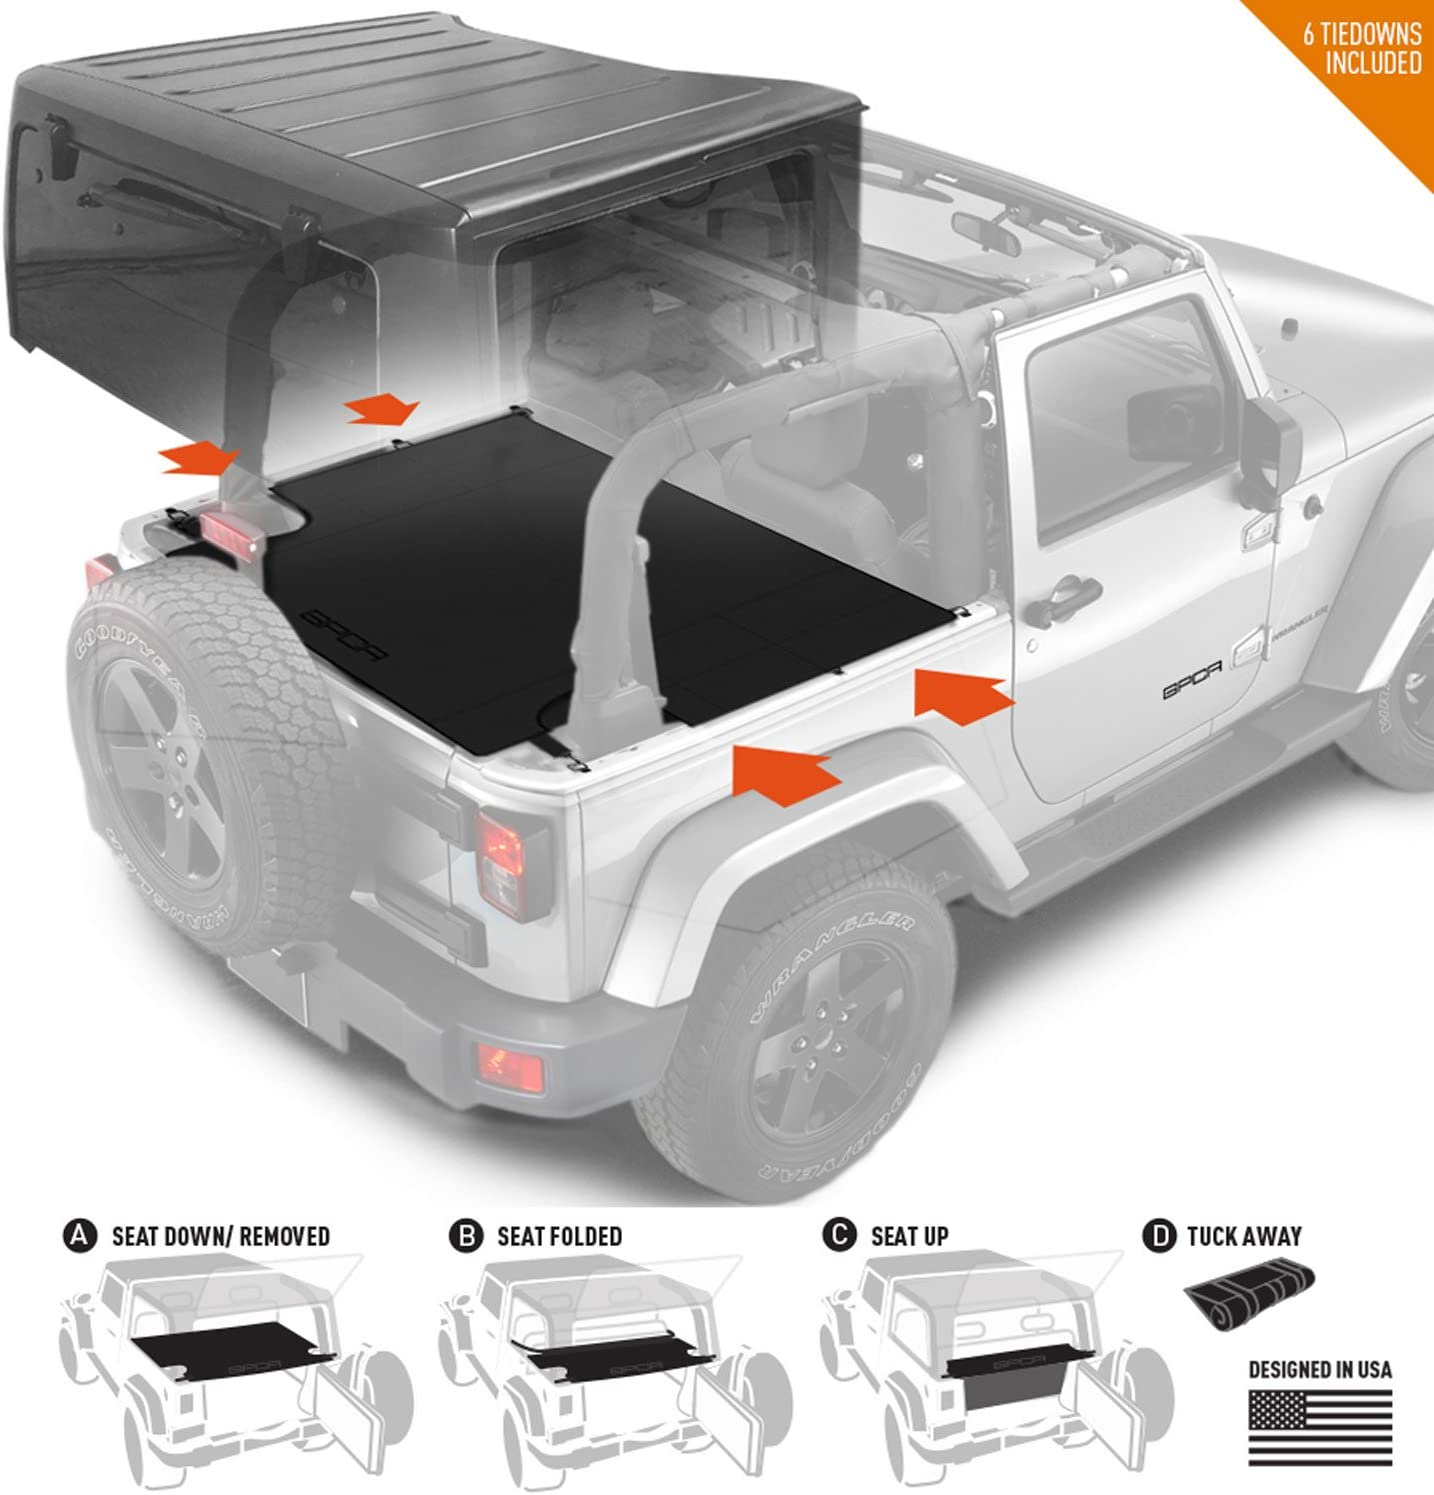 GPCA Jeep Wrangler JK 2DR Cargo Cover LITE - with seat Holding Strap and 3 configurations for Jeep JK 2007-2018 Sport/Sahara/Freedom/Rubicon Model